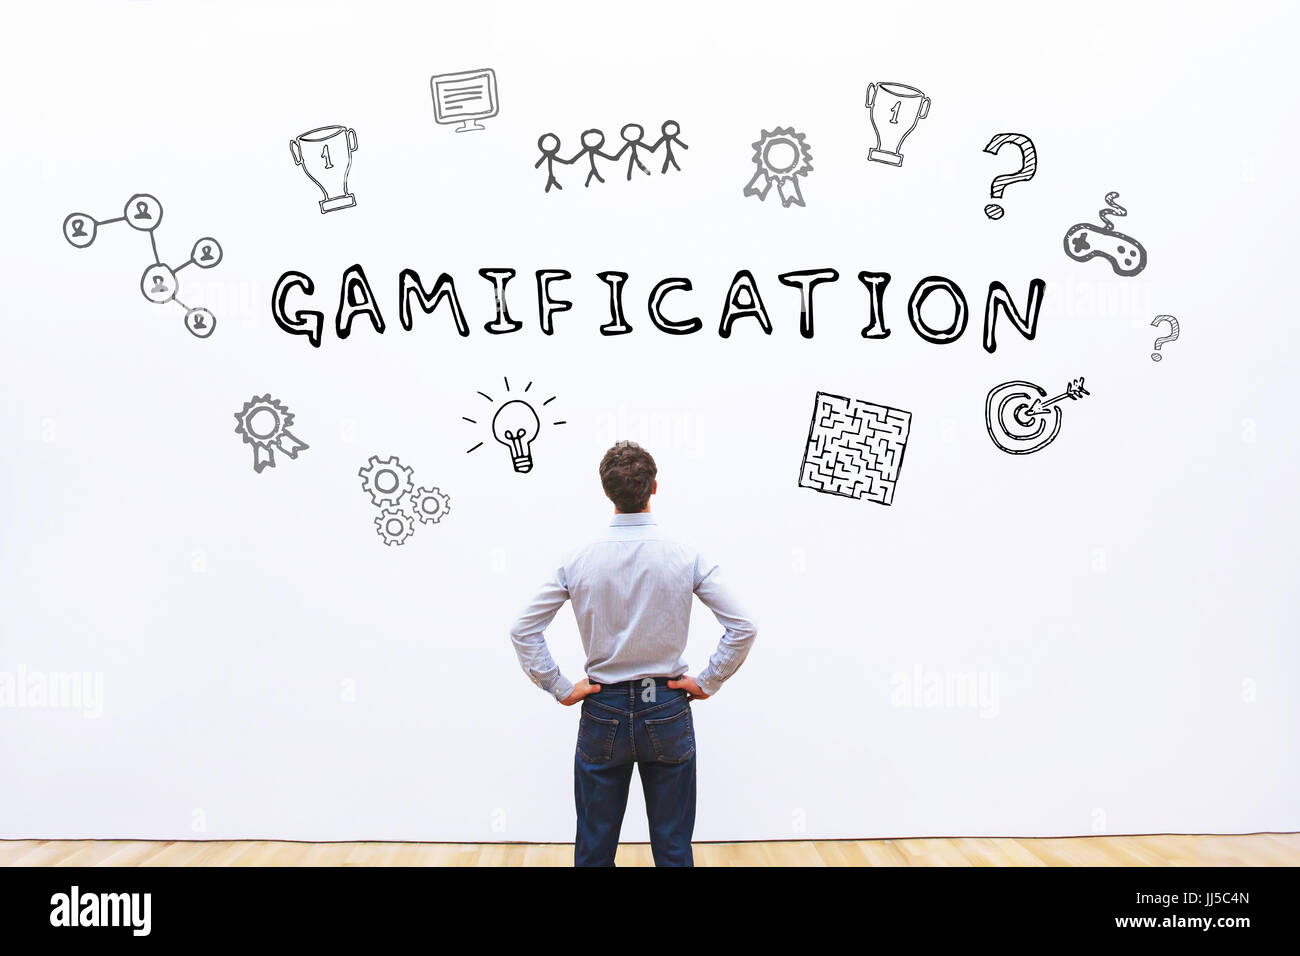 gamification concept - Stock Image